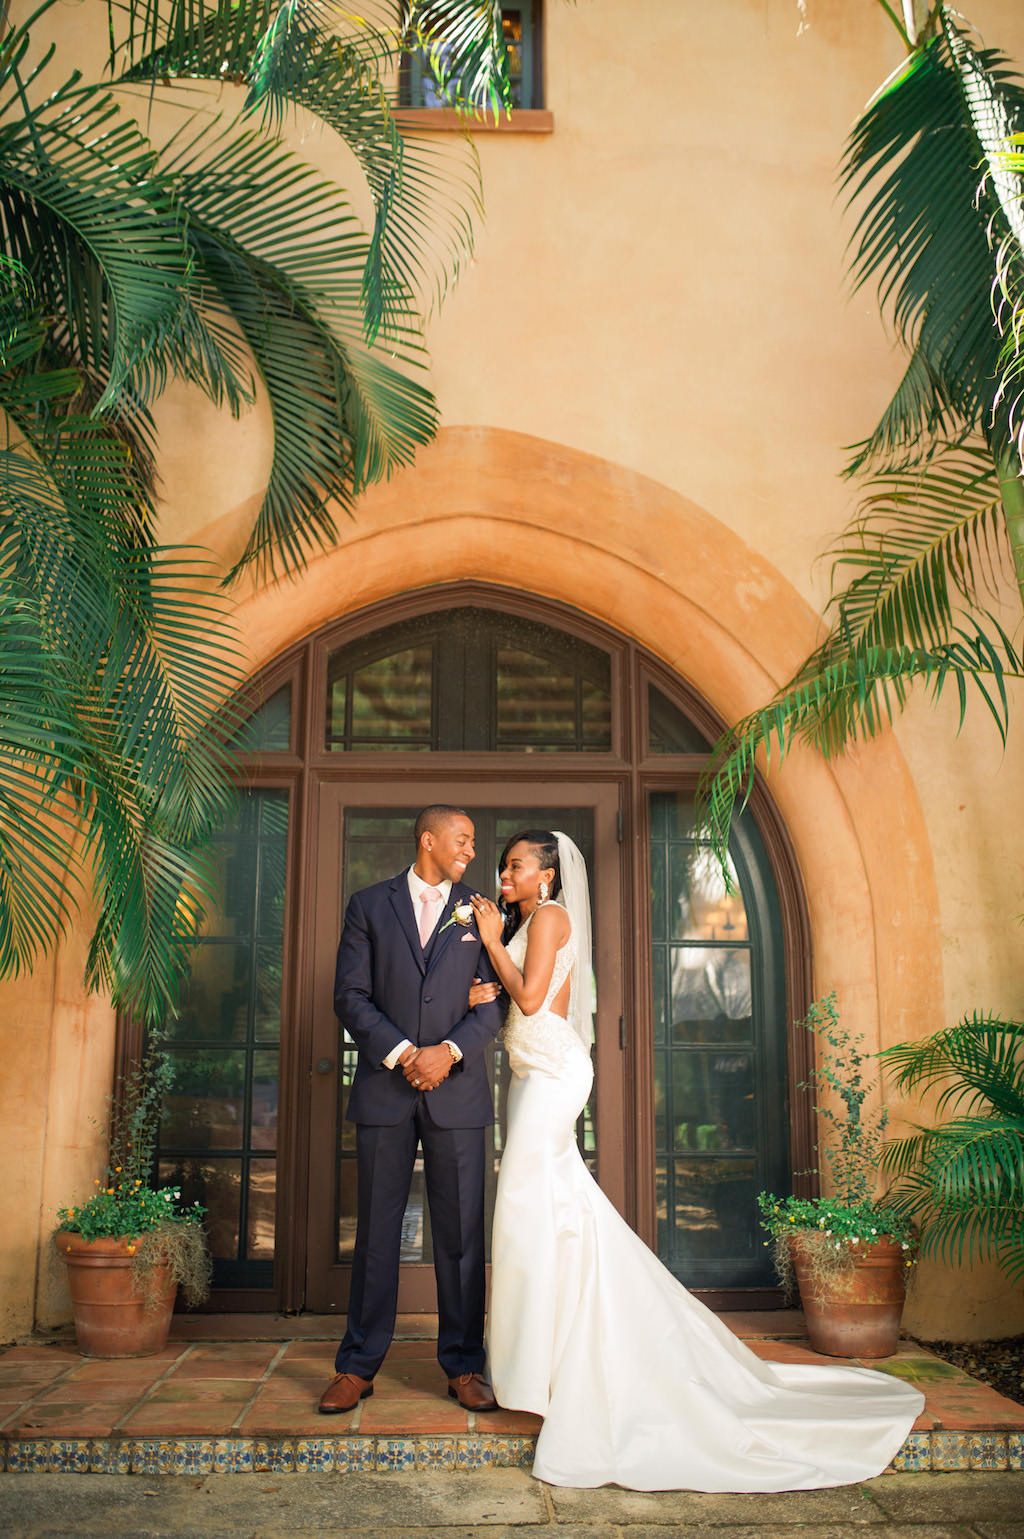 Outdoor Bride and Groom Portrait in V-neck Rhinestone Beaded Bodice and with Keyhole Back and Beaded Detailing Wedding Dress and Veil, Groom in Navy Blue Suit and Blush Pink Tie   Tampa Wedding Dress Shop Truly Forever Bridal